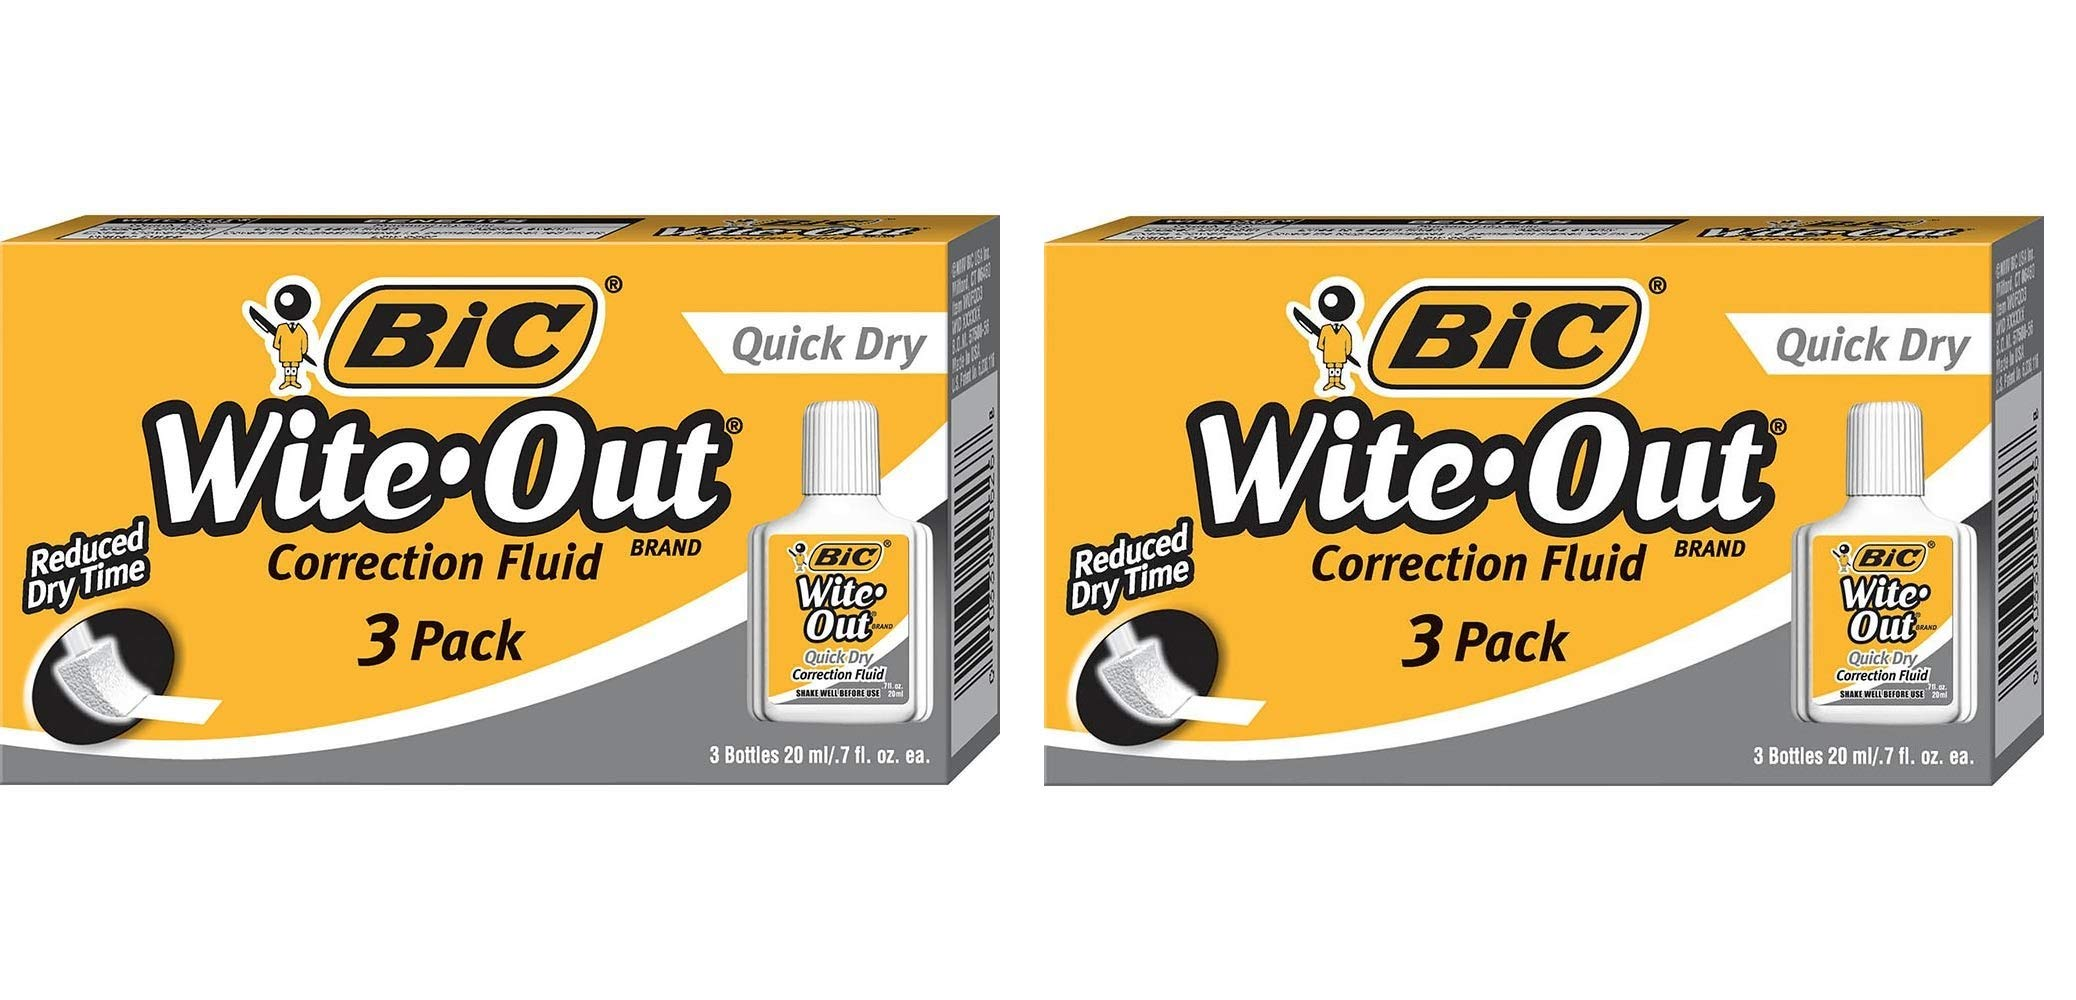 BIC Wite-Out Quick Dry Correction Fluid 20ml Bottle, 2 Pack (3 Bottles)